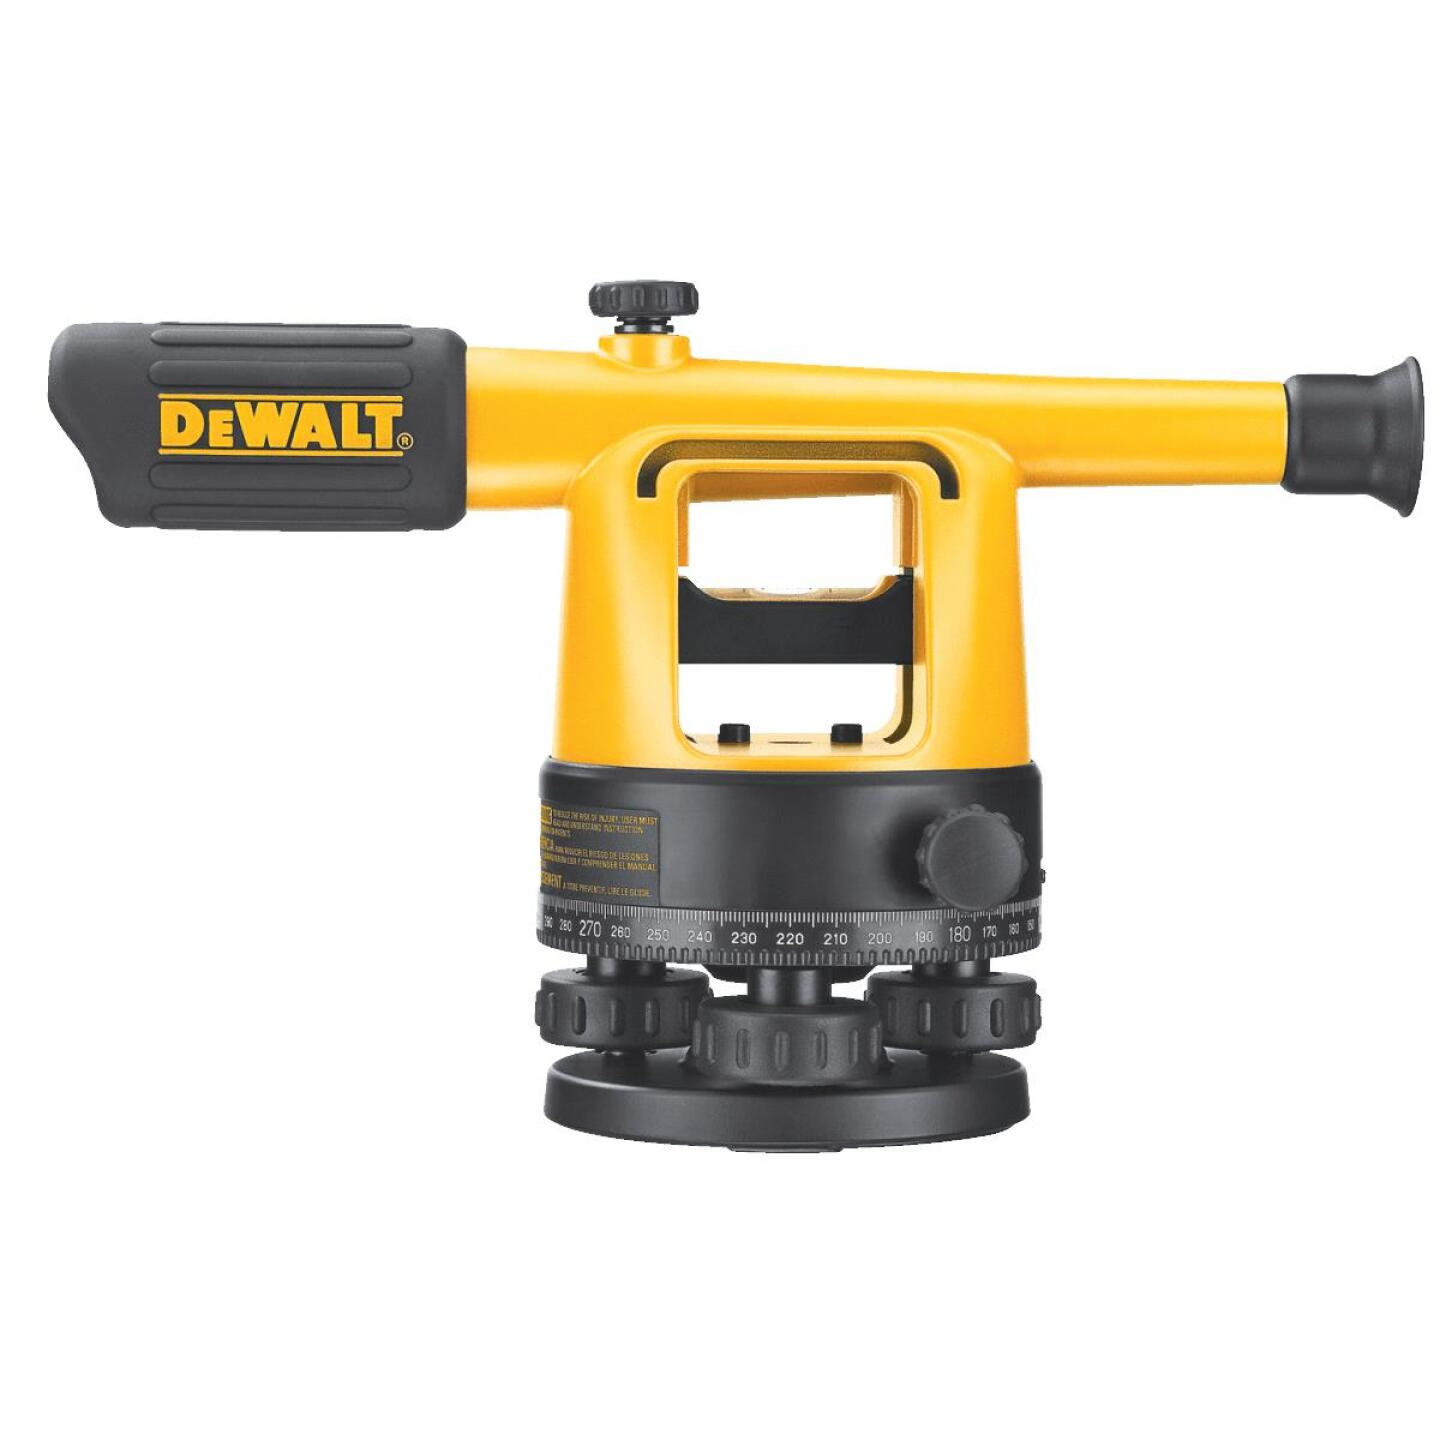 Dewalt 20x Magnifying Manual Sight Level Image 2